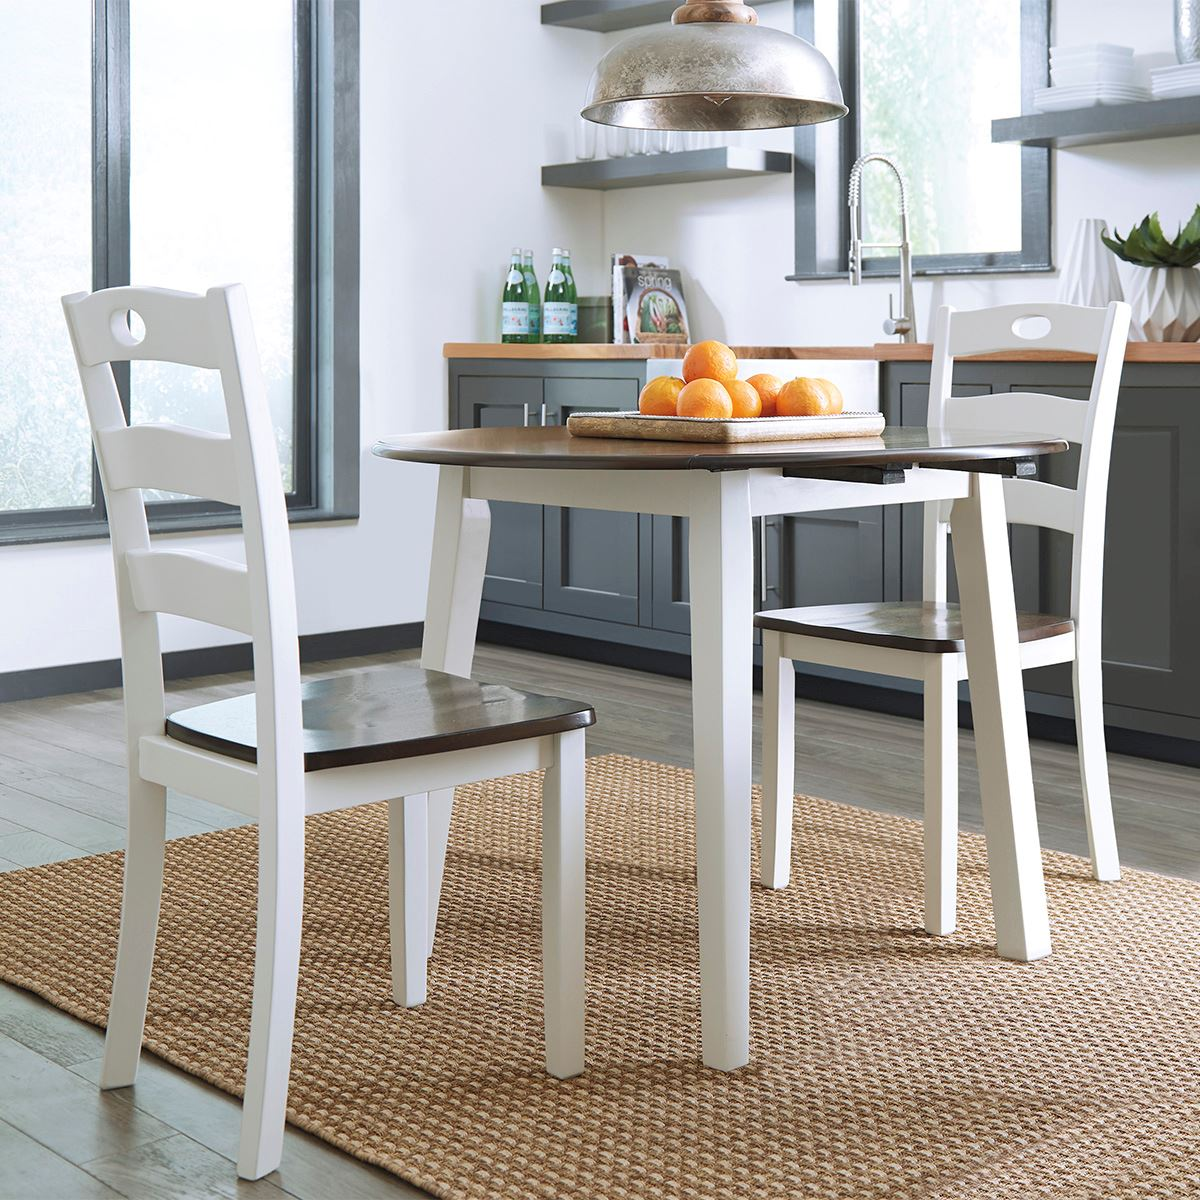 Lifestyle Furniture By Babetteu0027s